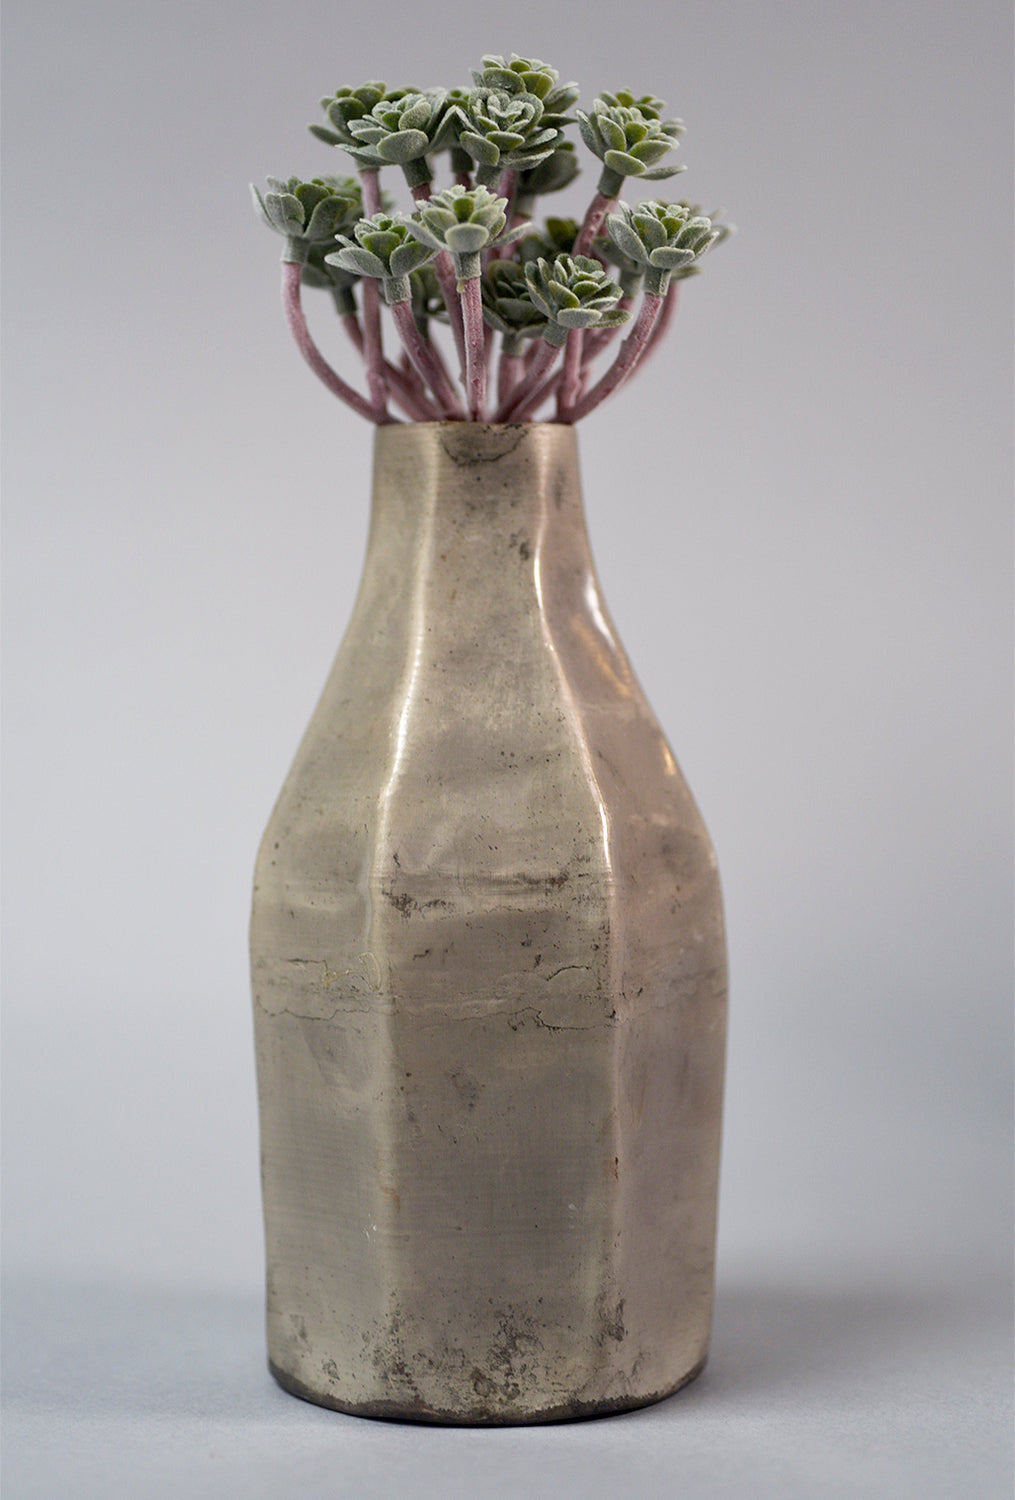 Iron Vase, Medium, Antique Silver